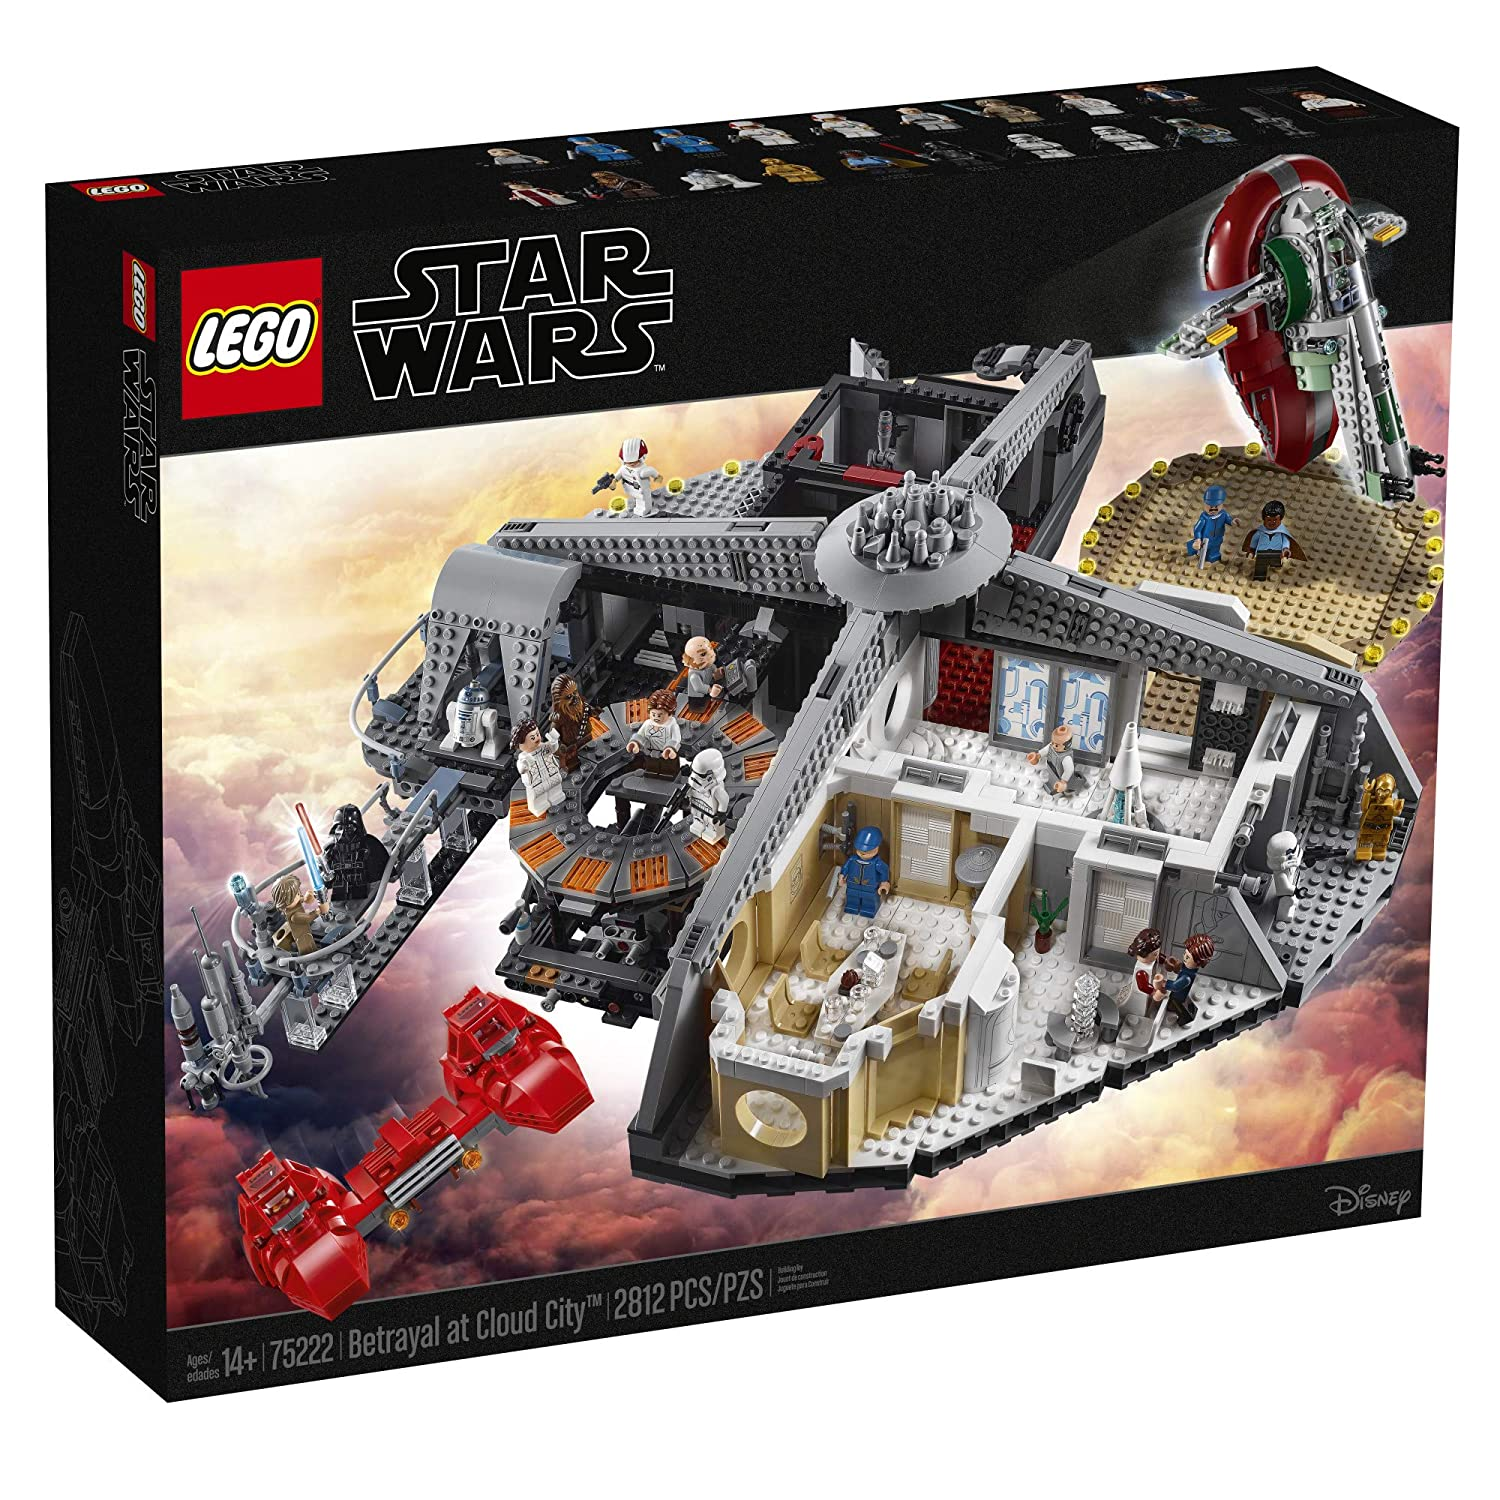 Rumored List Of Retiring Lego Star Wars Sets 2019 The